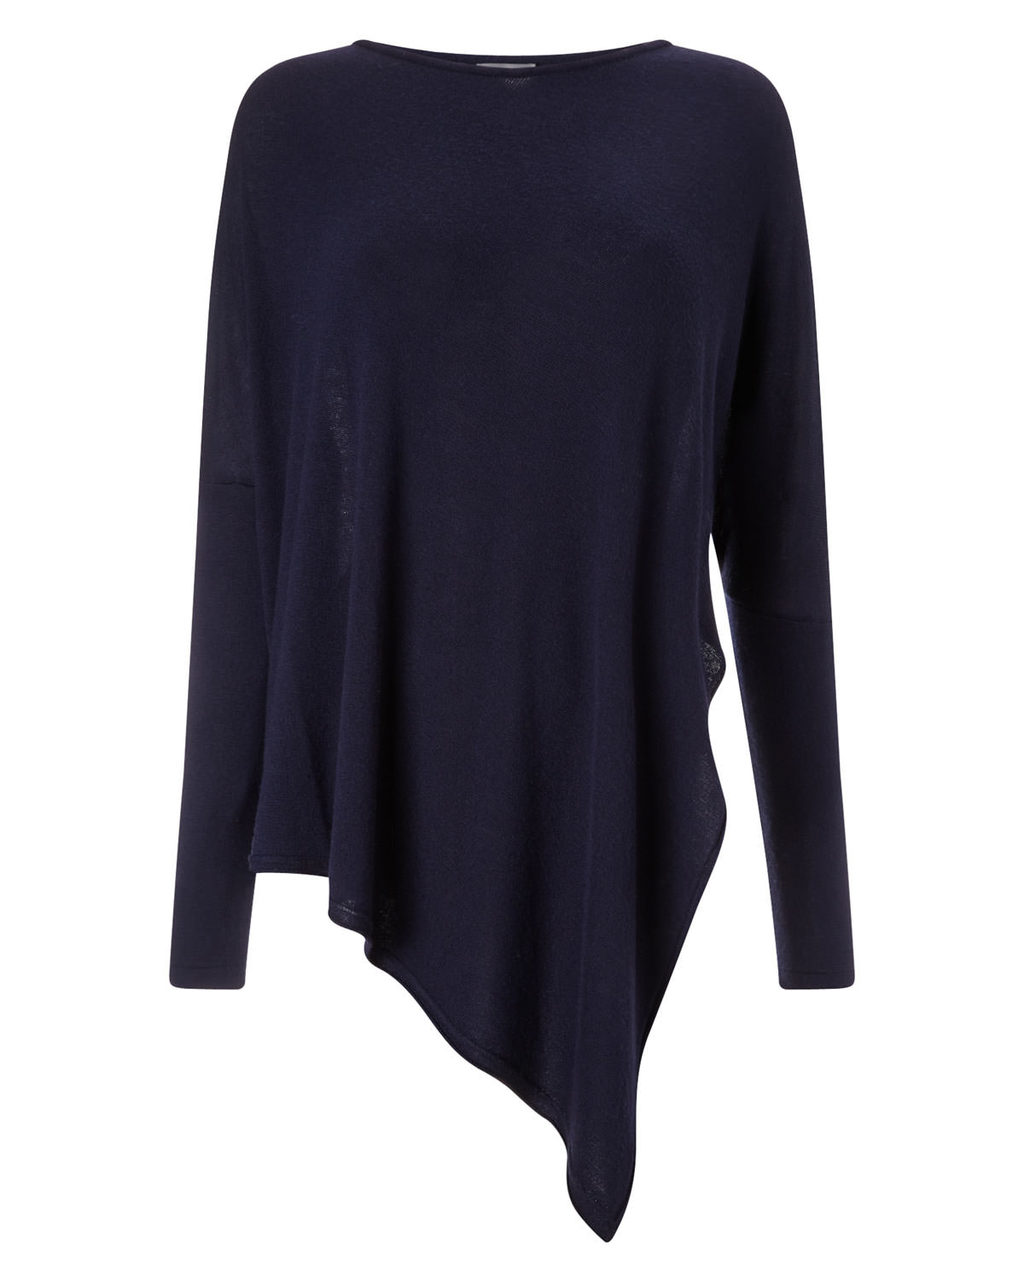 Reine Asymmetric Knit - pattern: plain; style: standard; predominant colour: navy; occasions: casual; length: standard; fit: slim fit; neckline: crew; sleeve length: long sleeve; sleeve style: standard; texture group: knits/crochet; pattern type: fabric; fibres: viscose/rayon - mix; season: a/w 2015